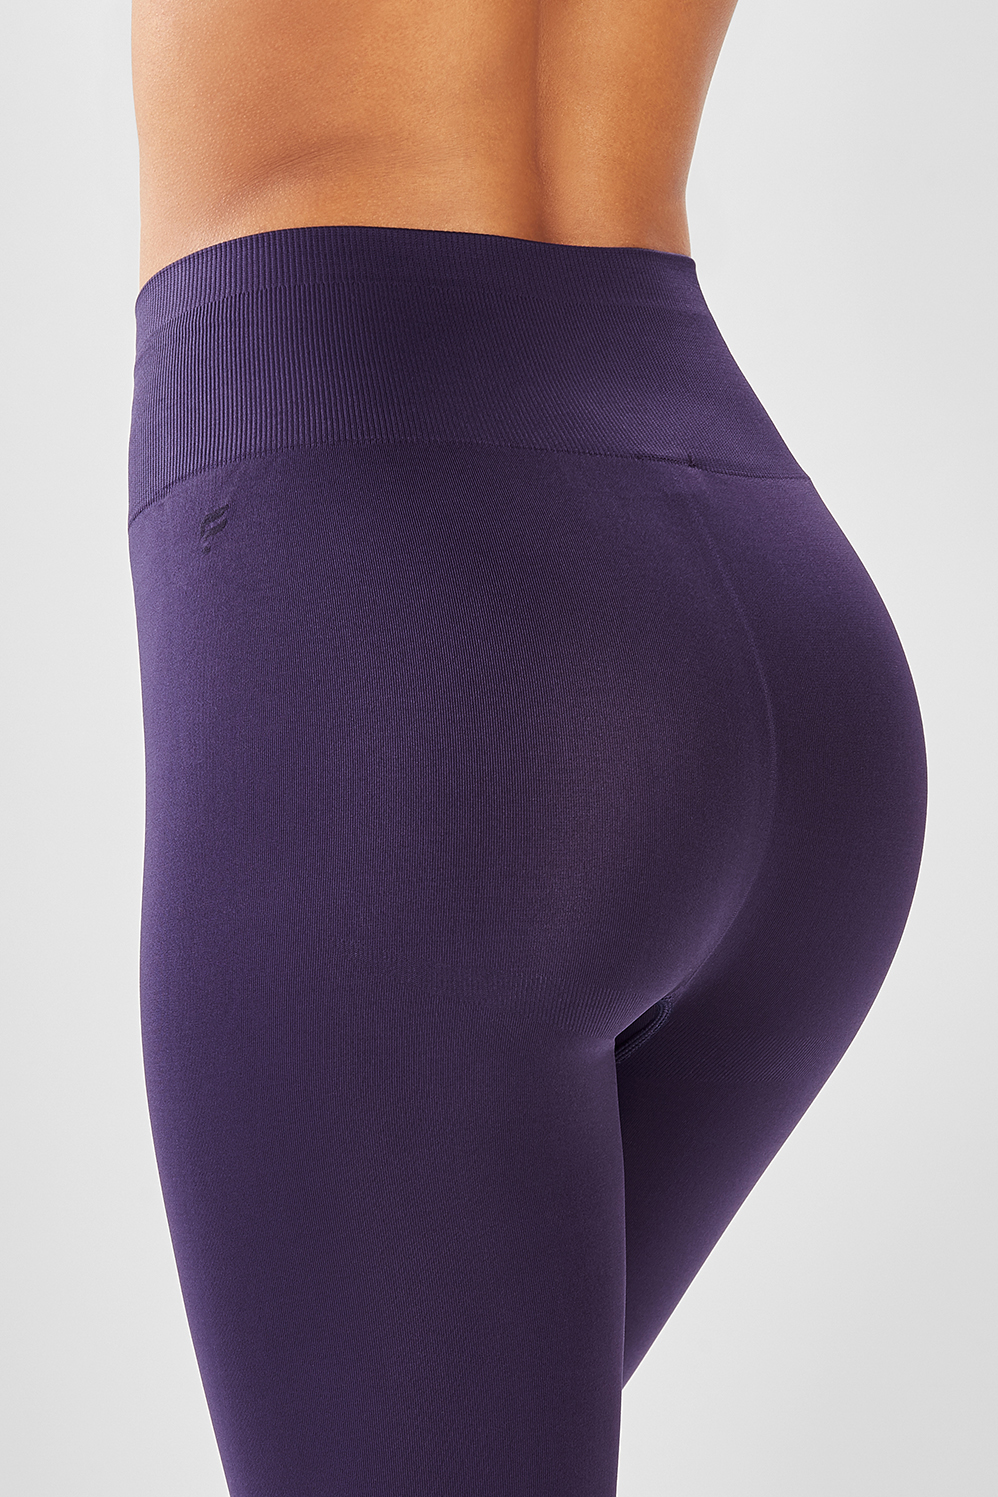 3a6168074a7 Seamless High-Waisted Solid Legging - Fabletics